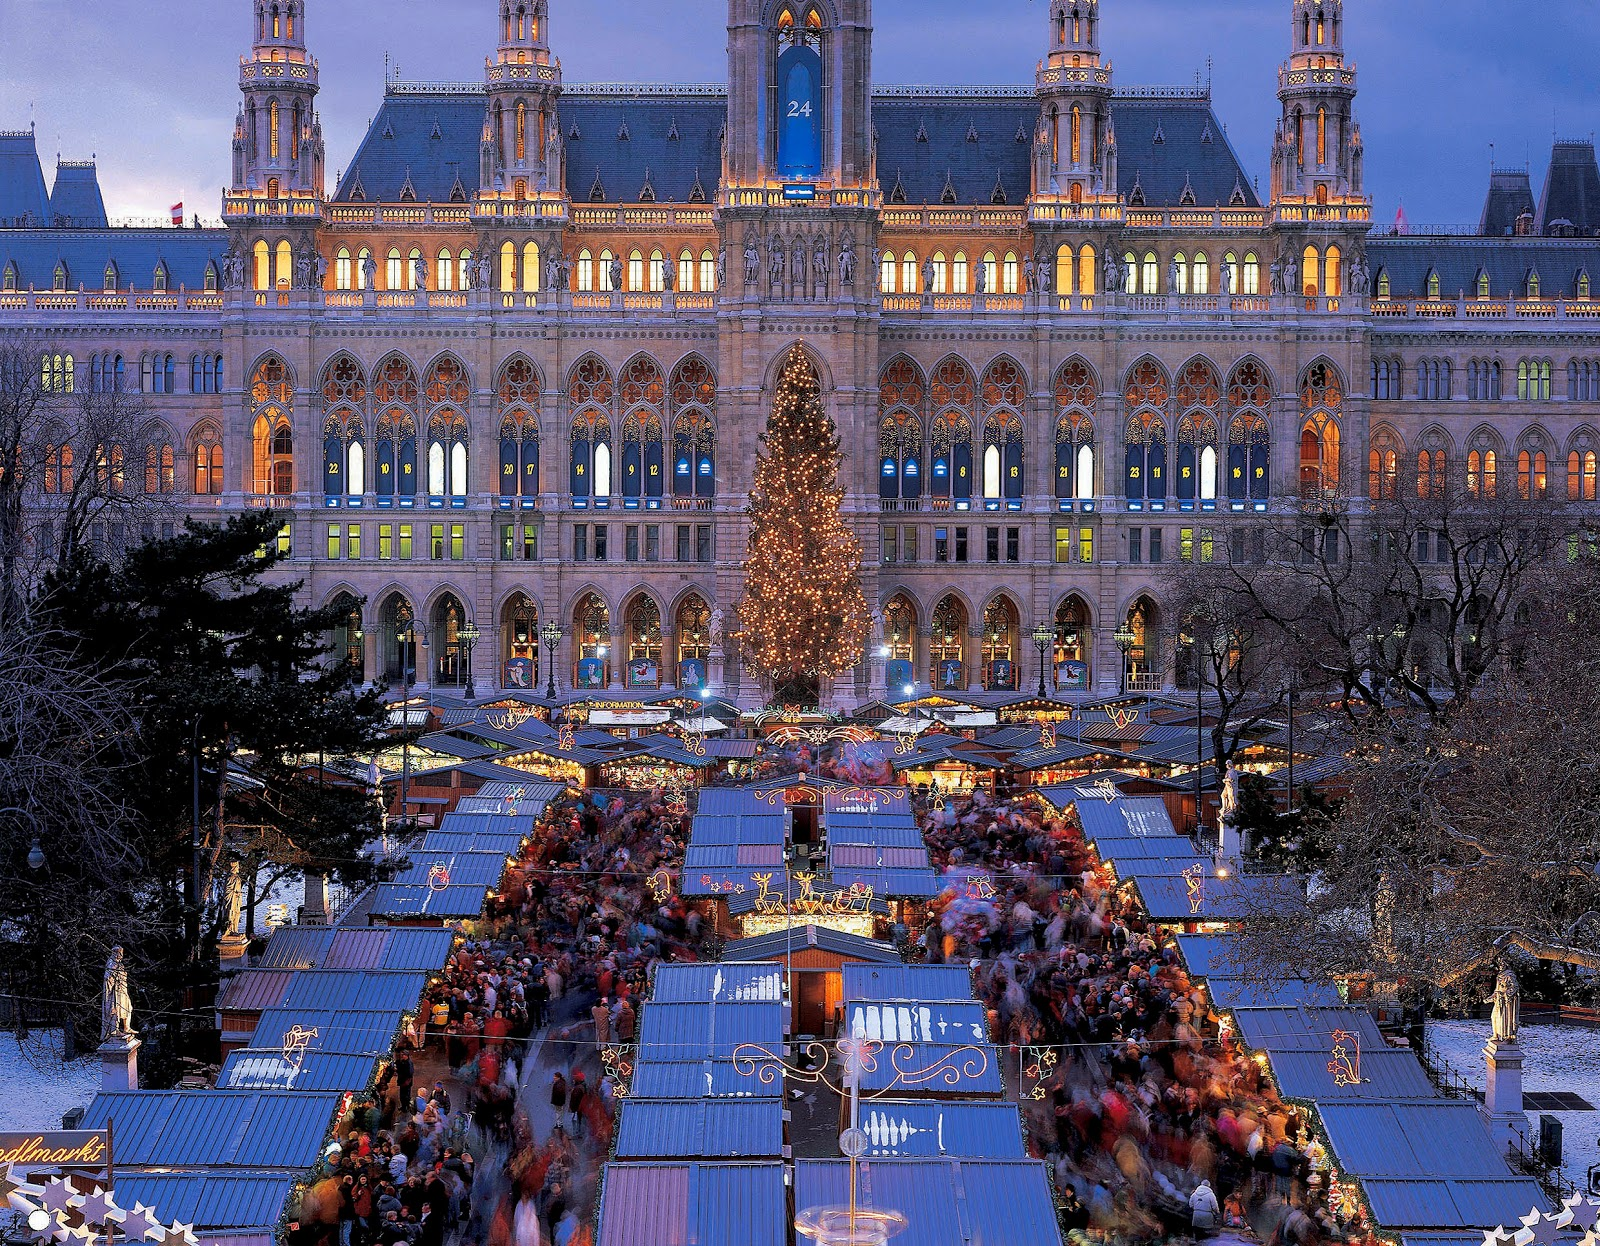 The Neo-Gothic Viennese City Hall building provides a magnificent backdrop for the Vienna Christmas Market. Photo: © Austrian Tourist Office. Unauthorized use is prohibited.